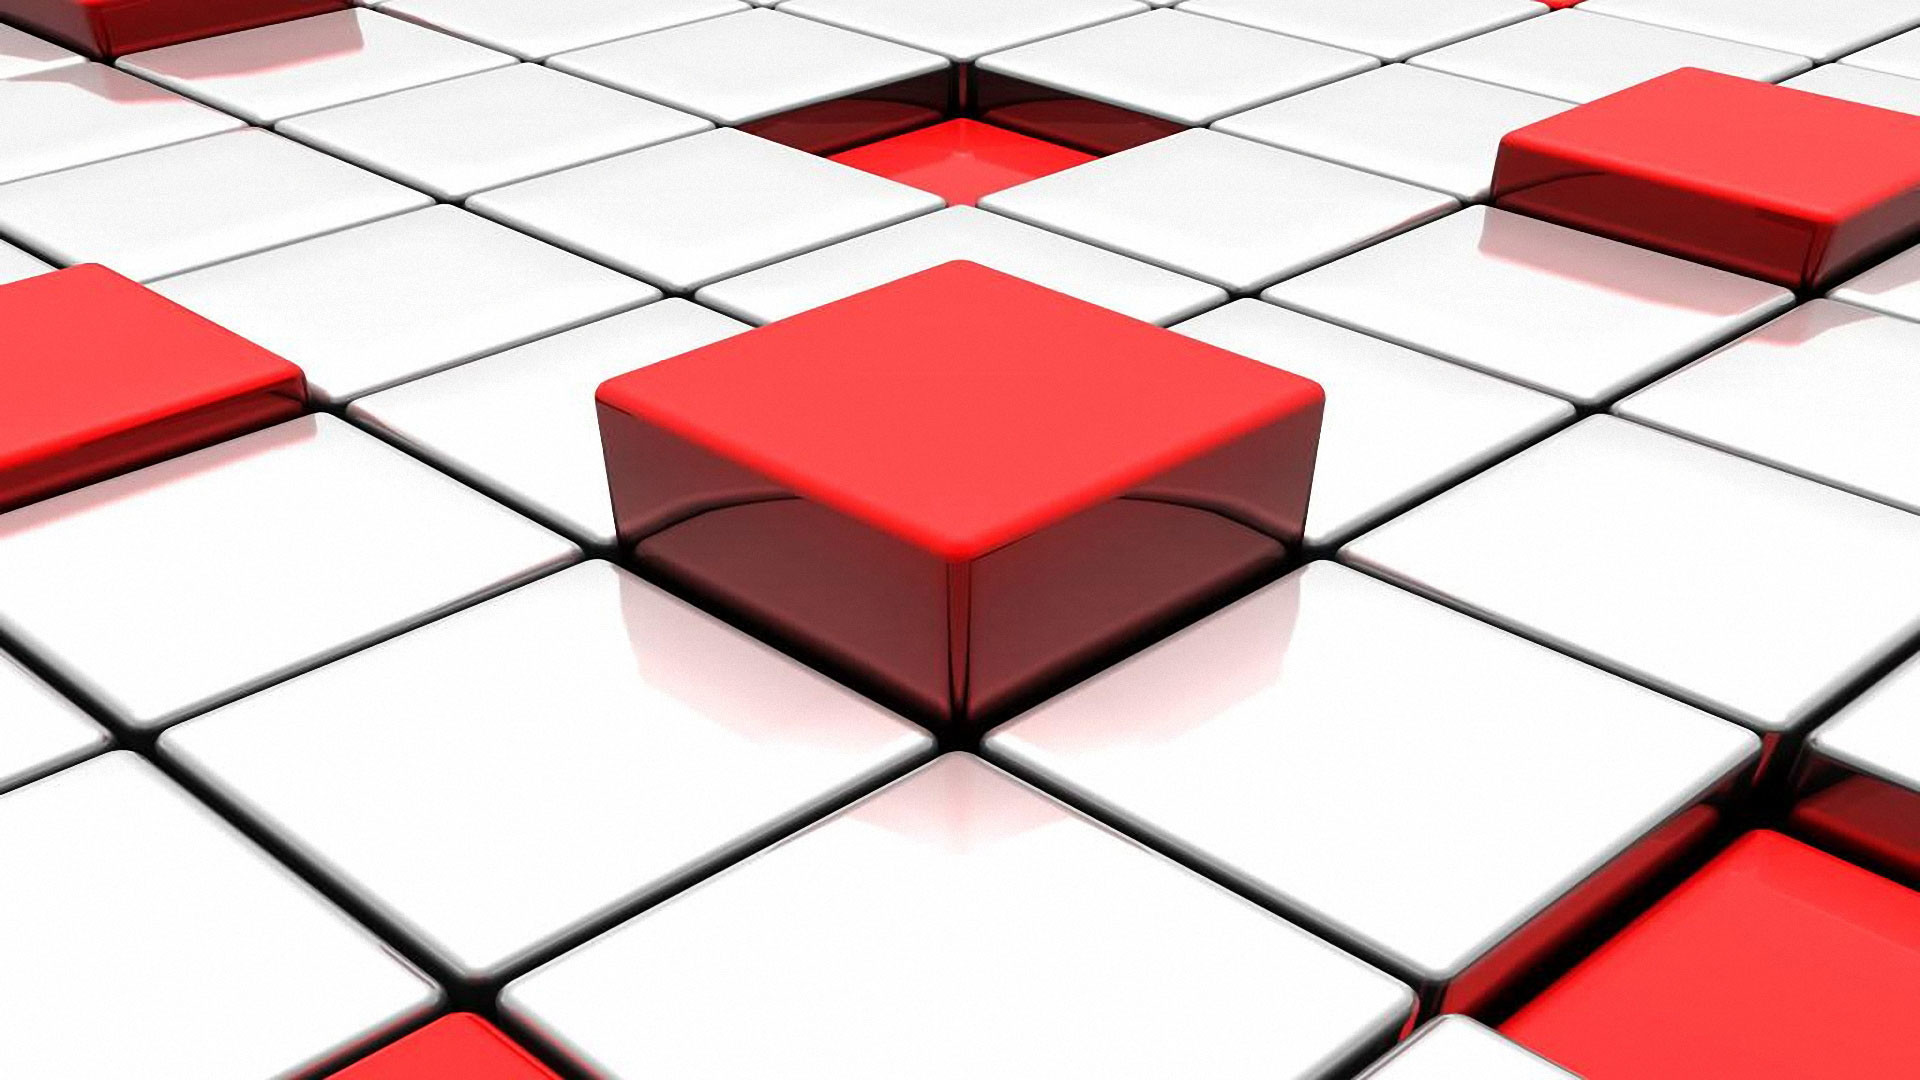 Red Abstract D And White Tiles Free Wallpaper